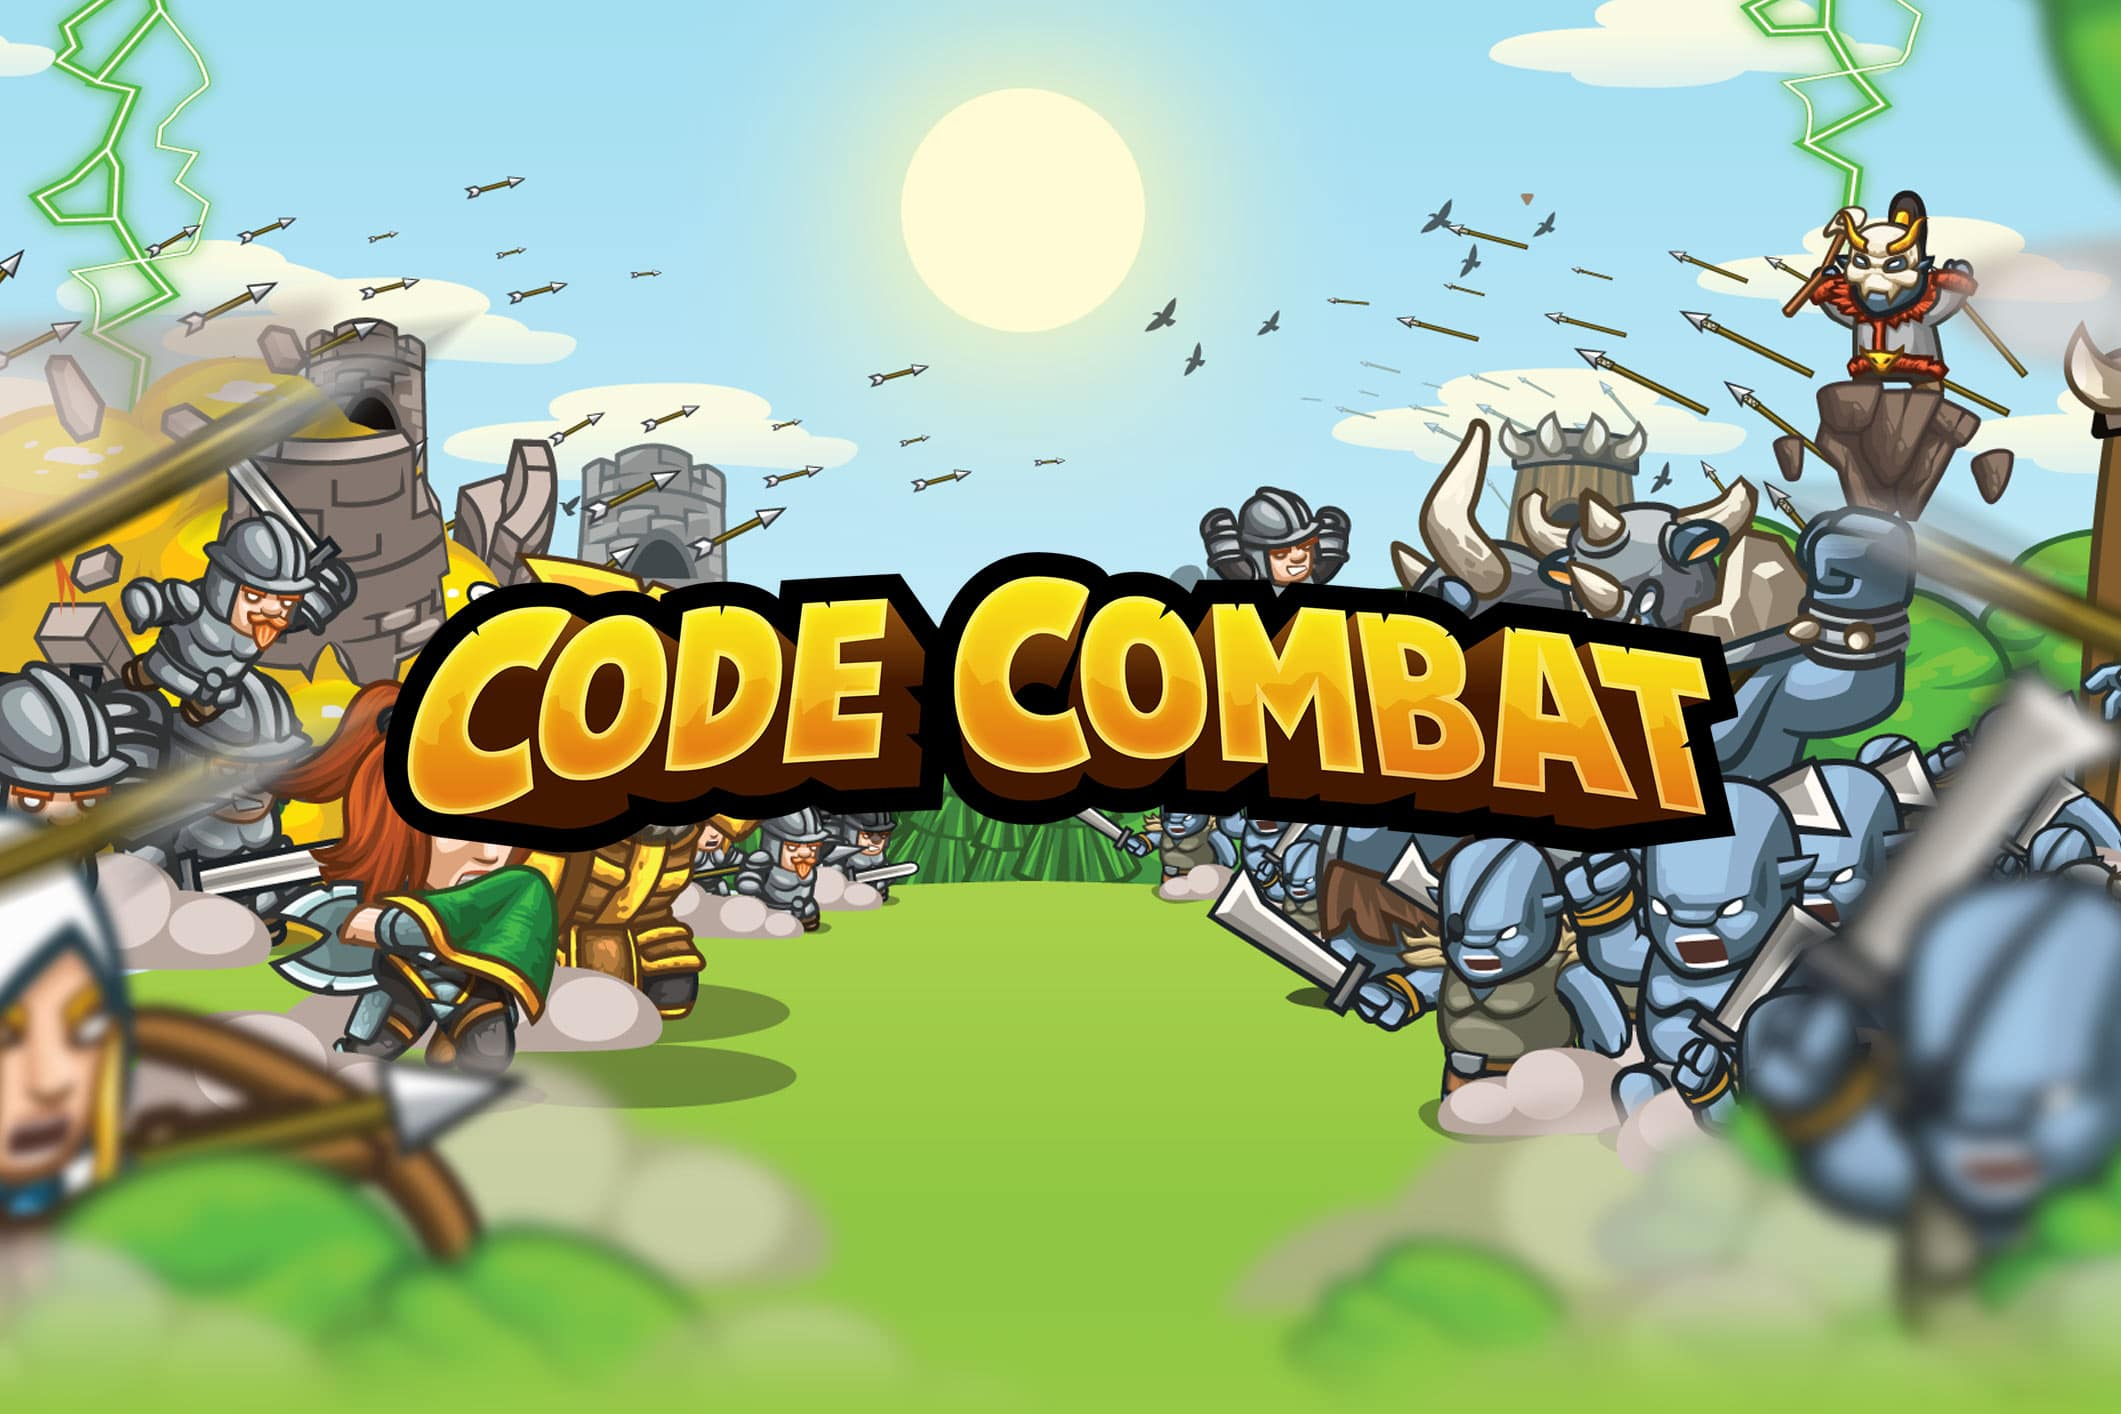 codecombat-home-box